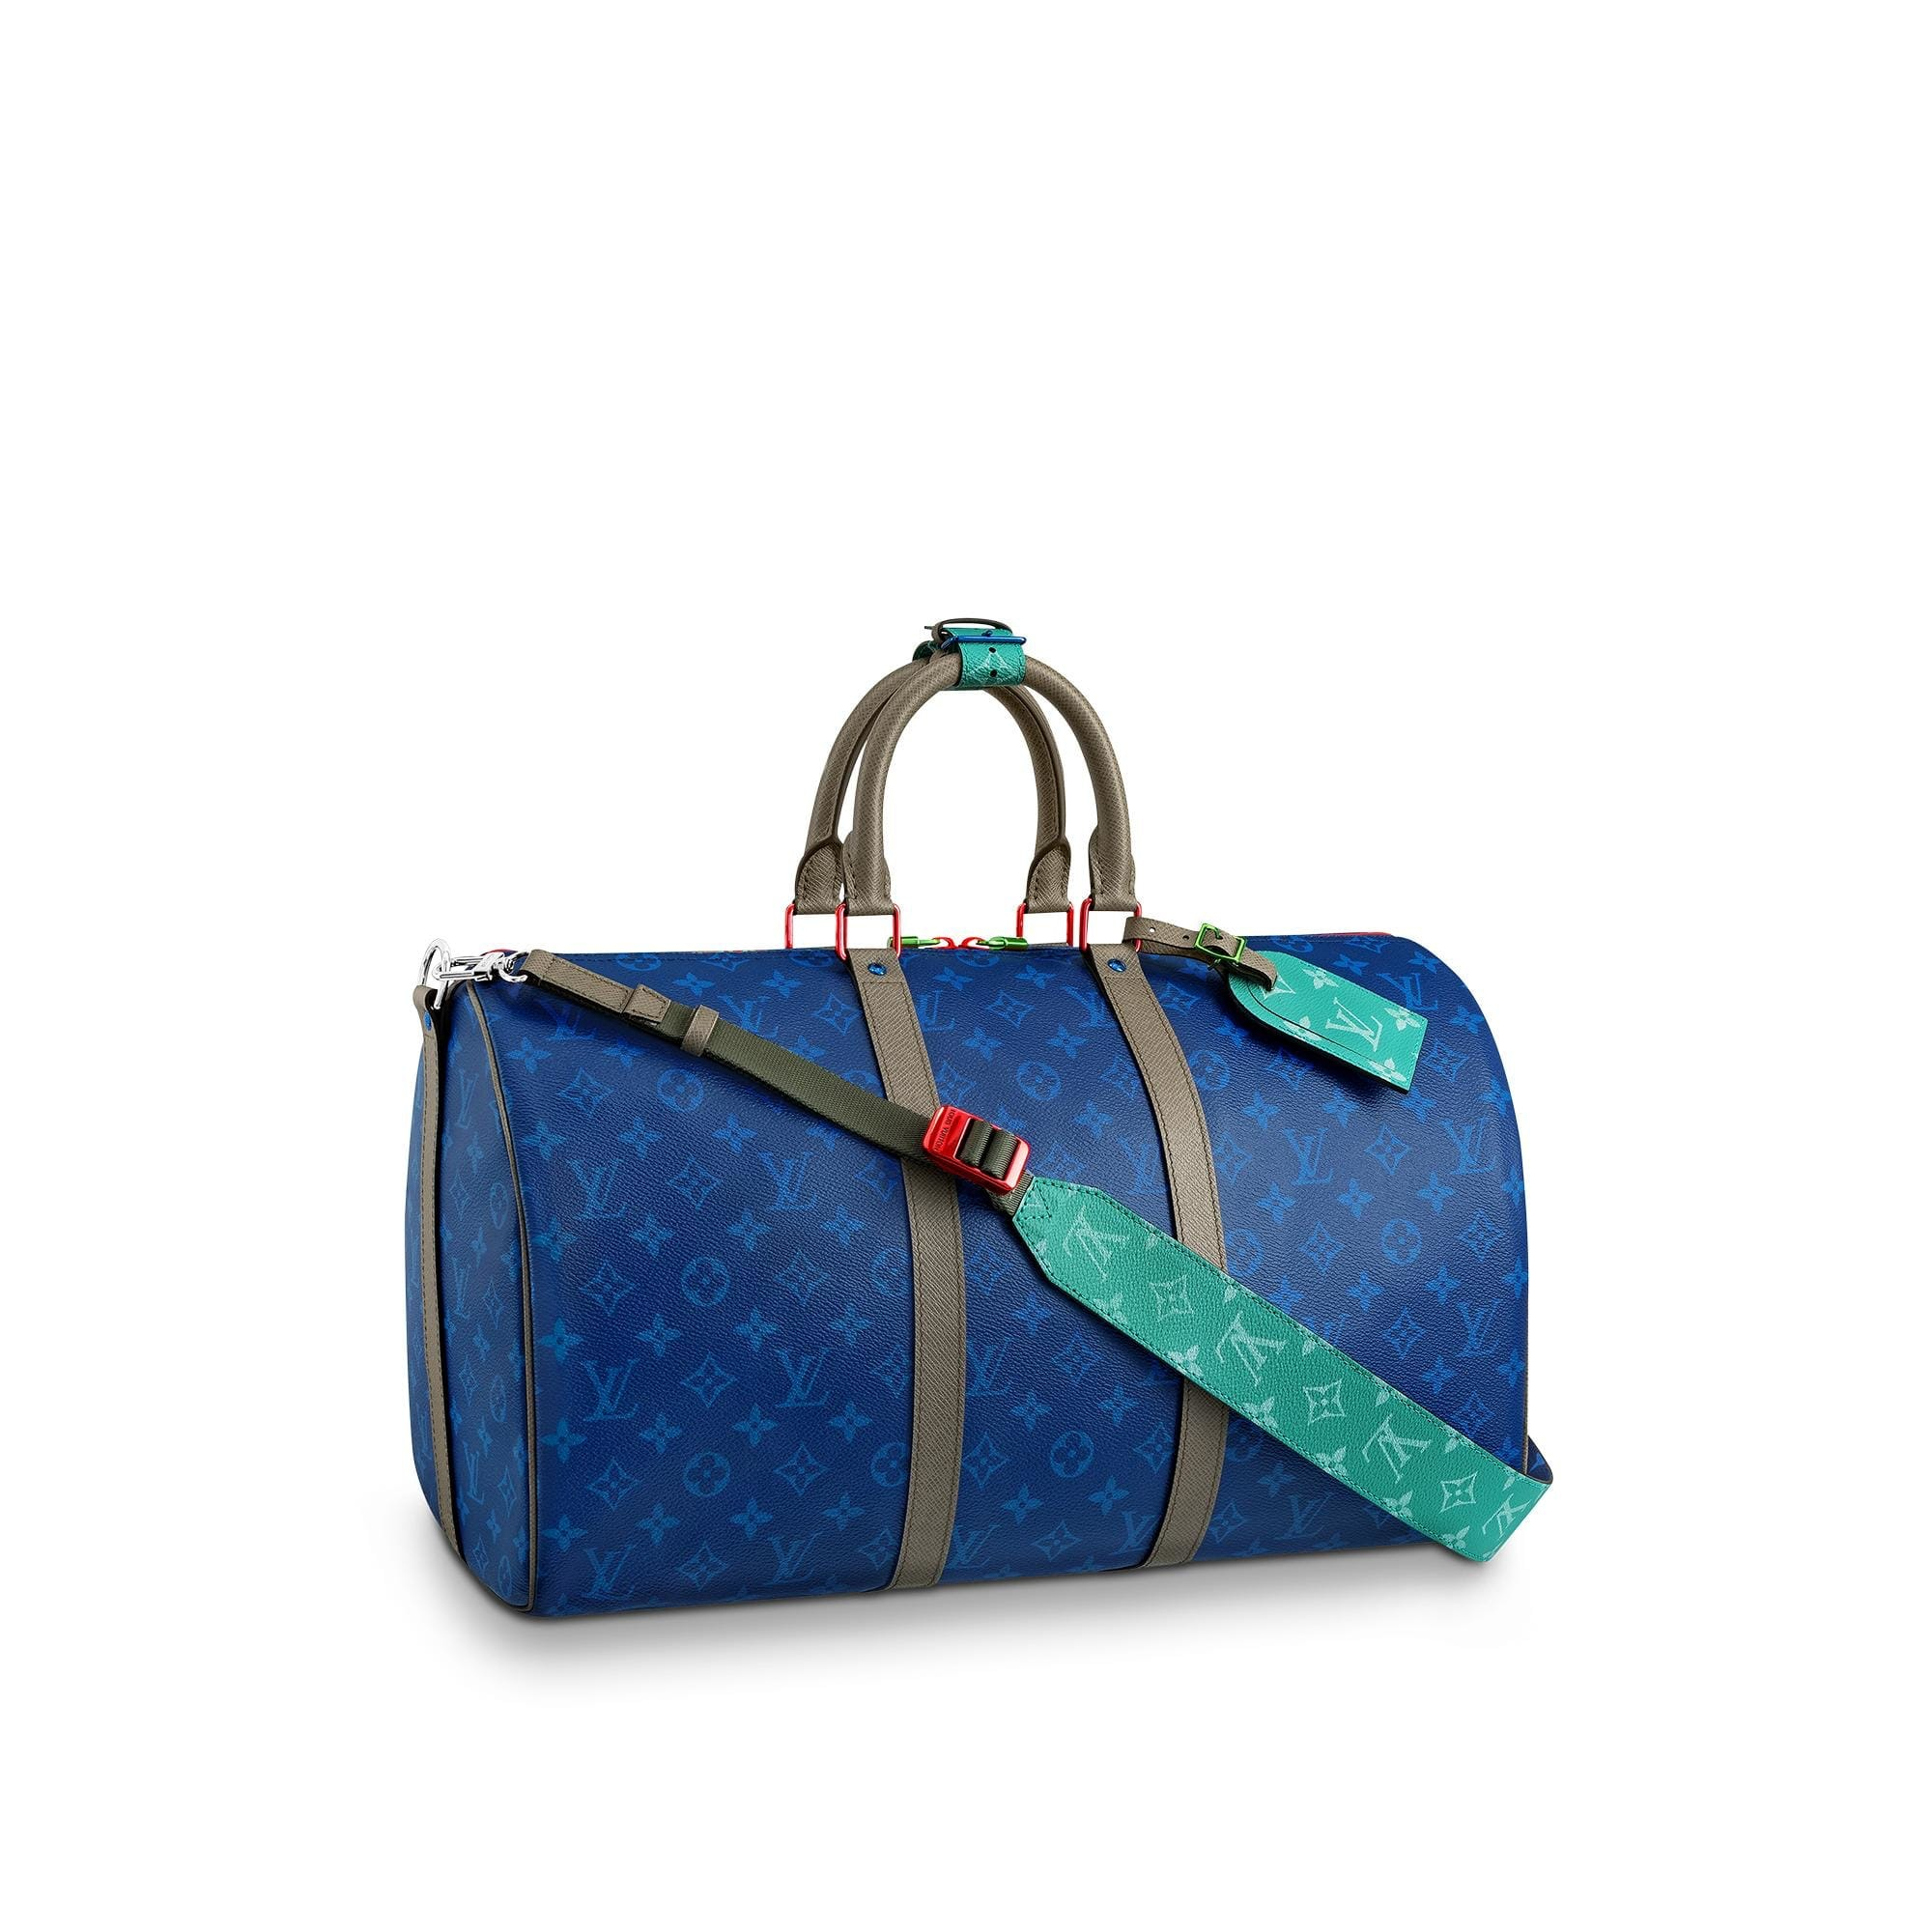 Louis Vuitton Keepall Bandouliere Monogram Outdoor With Strap 45 Pacific Blue